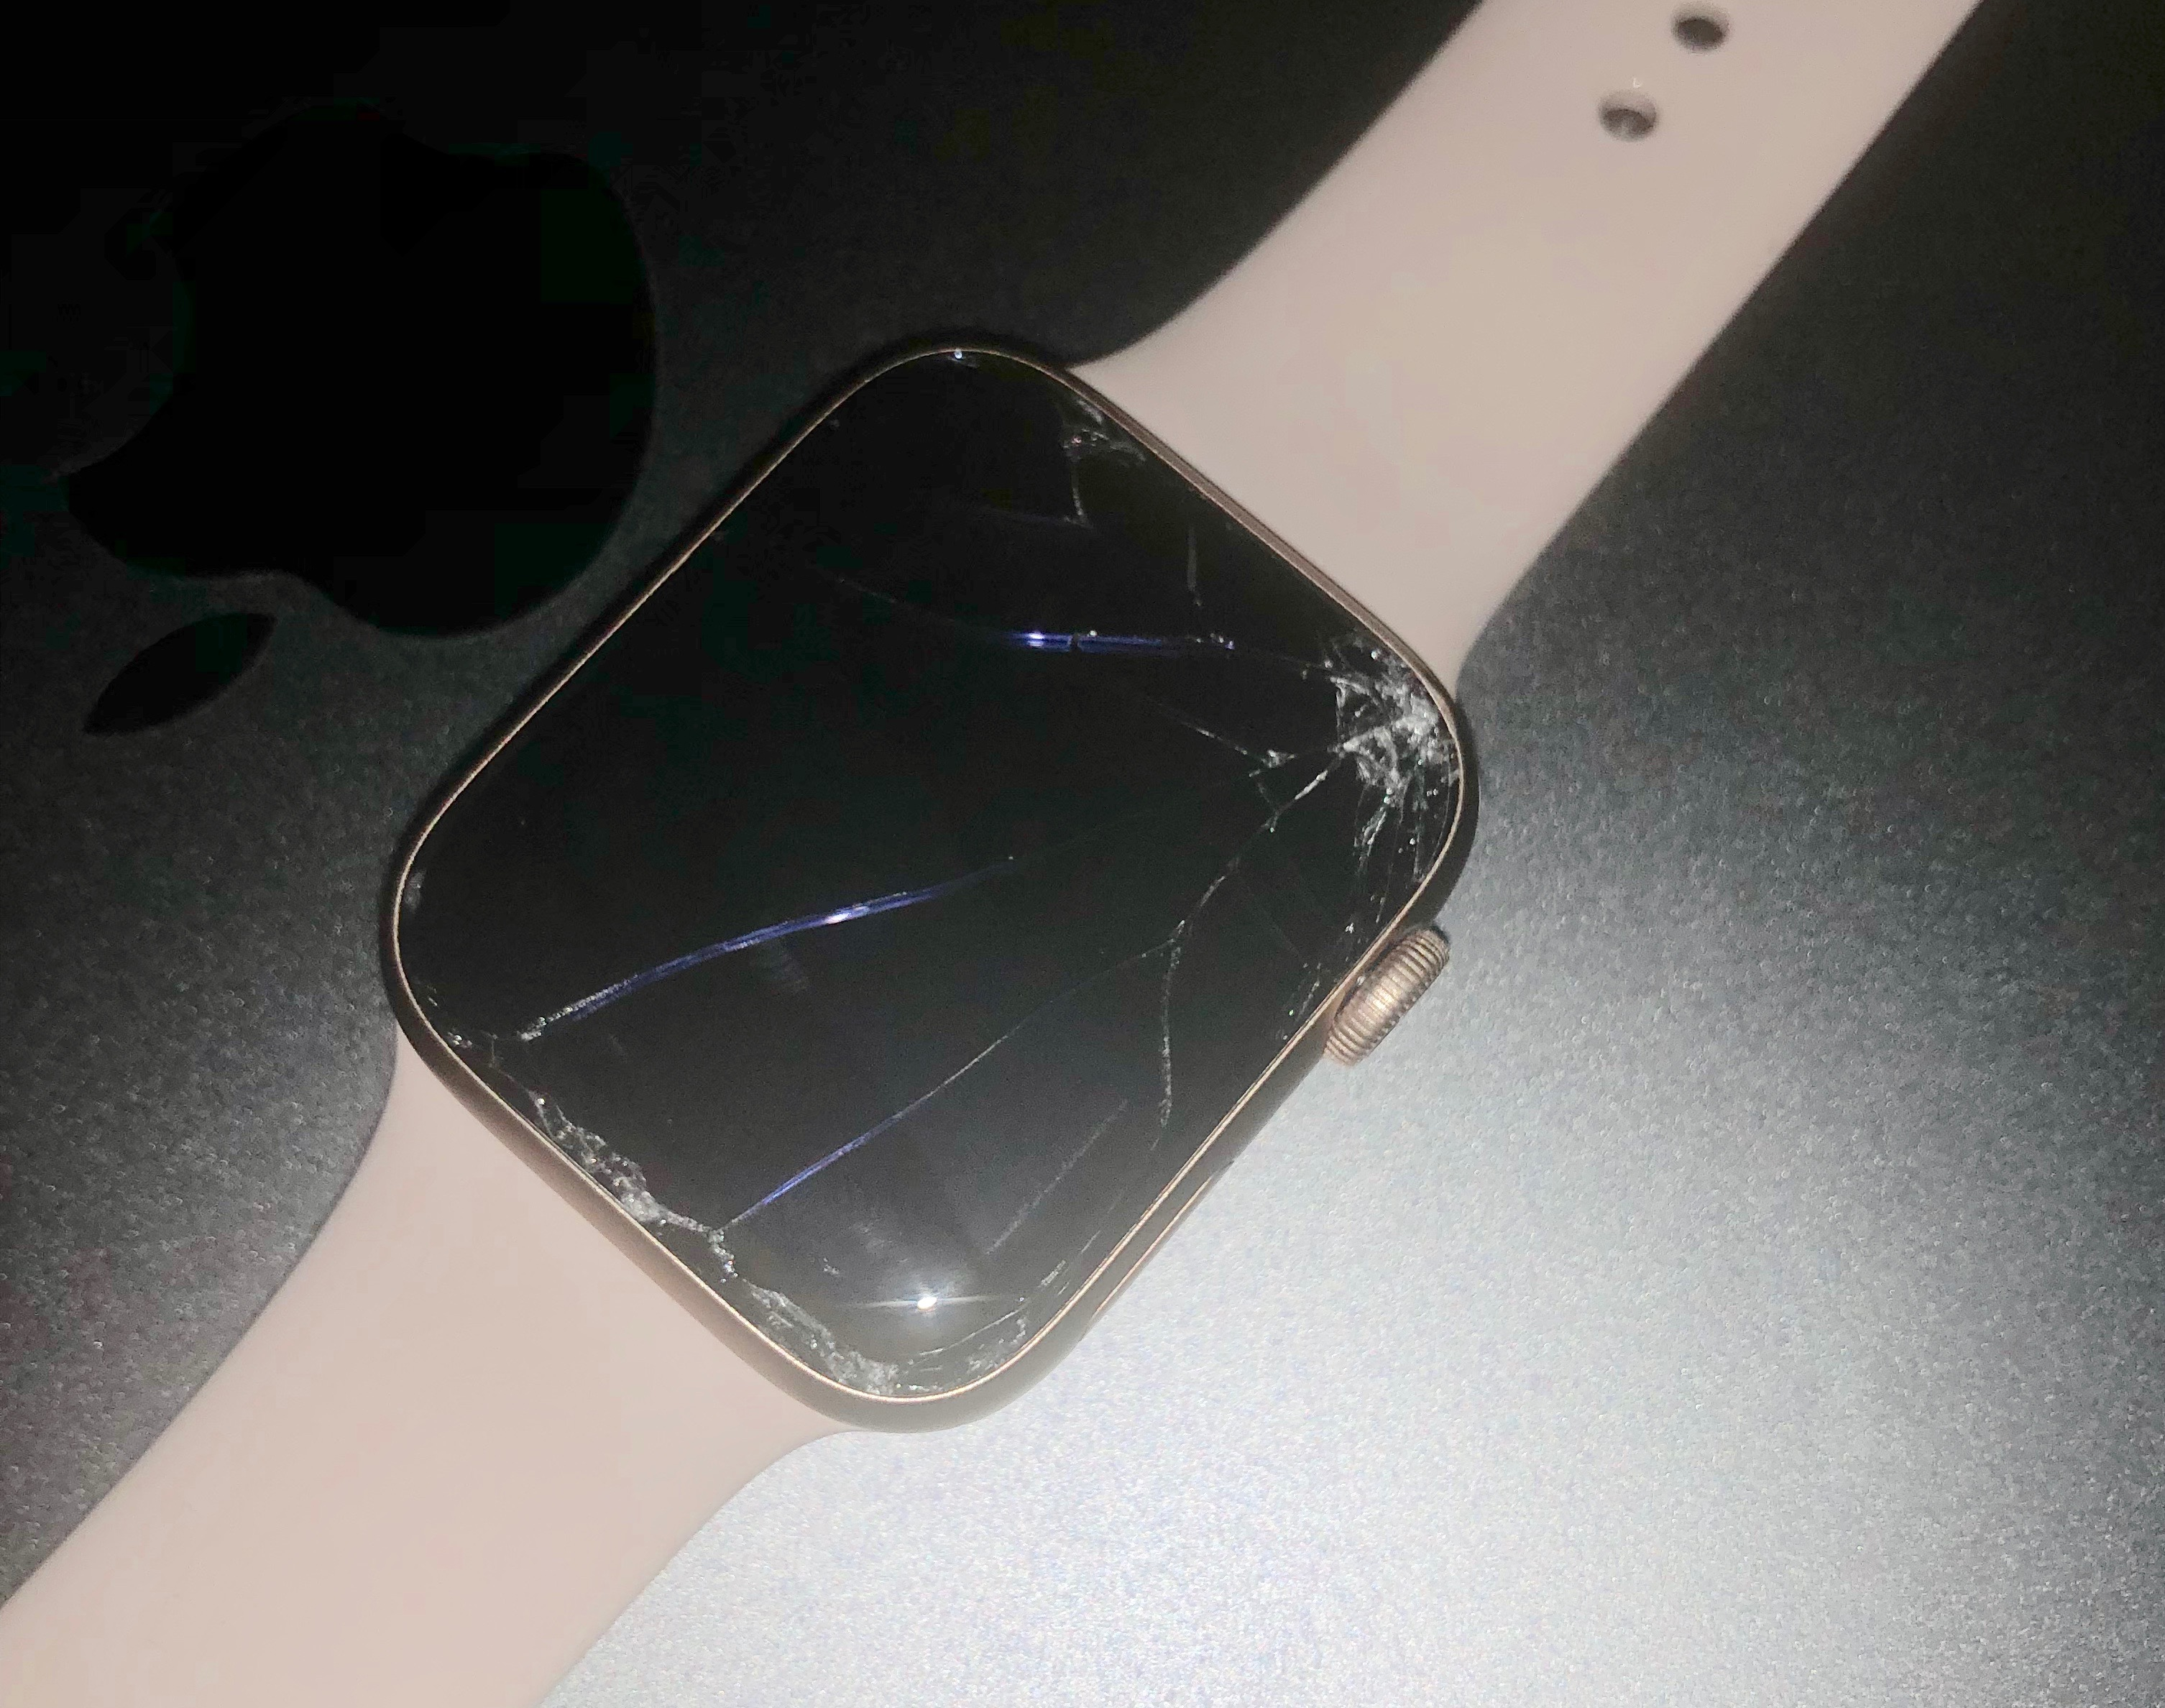 Drop your Apple Watch from 2 feet and the screen smashes